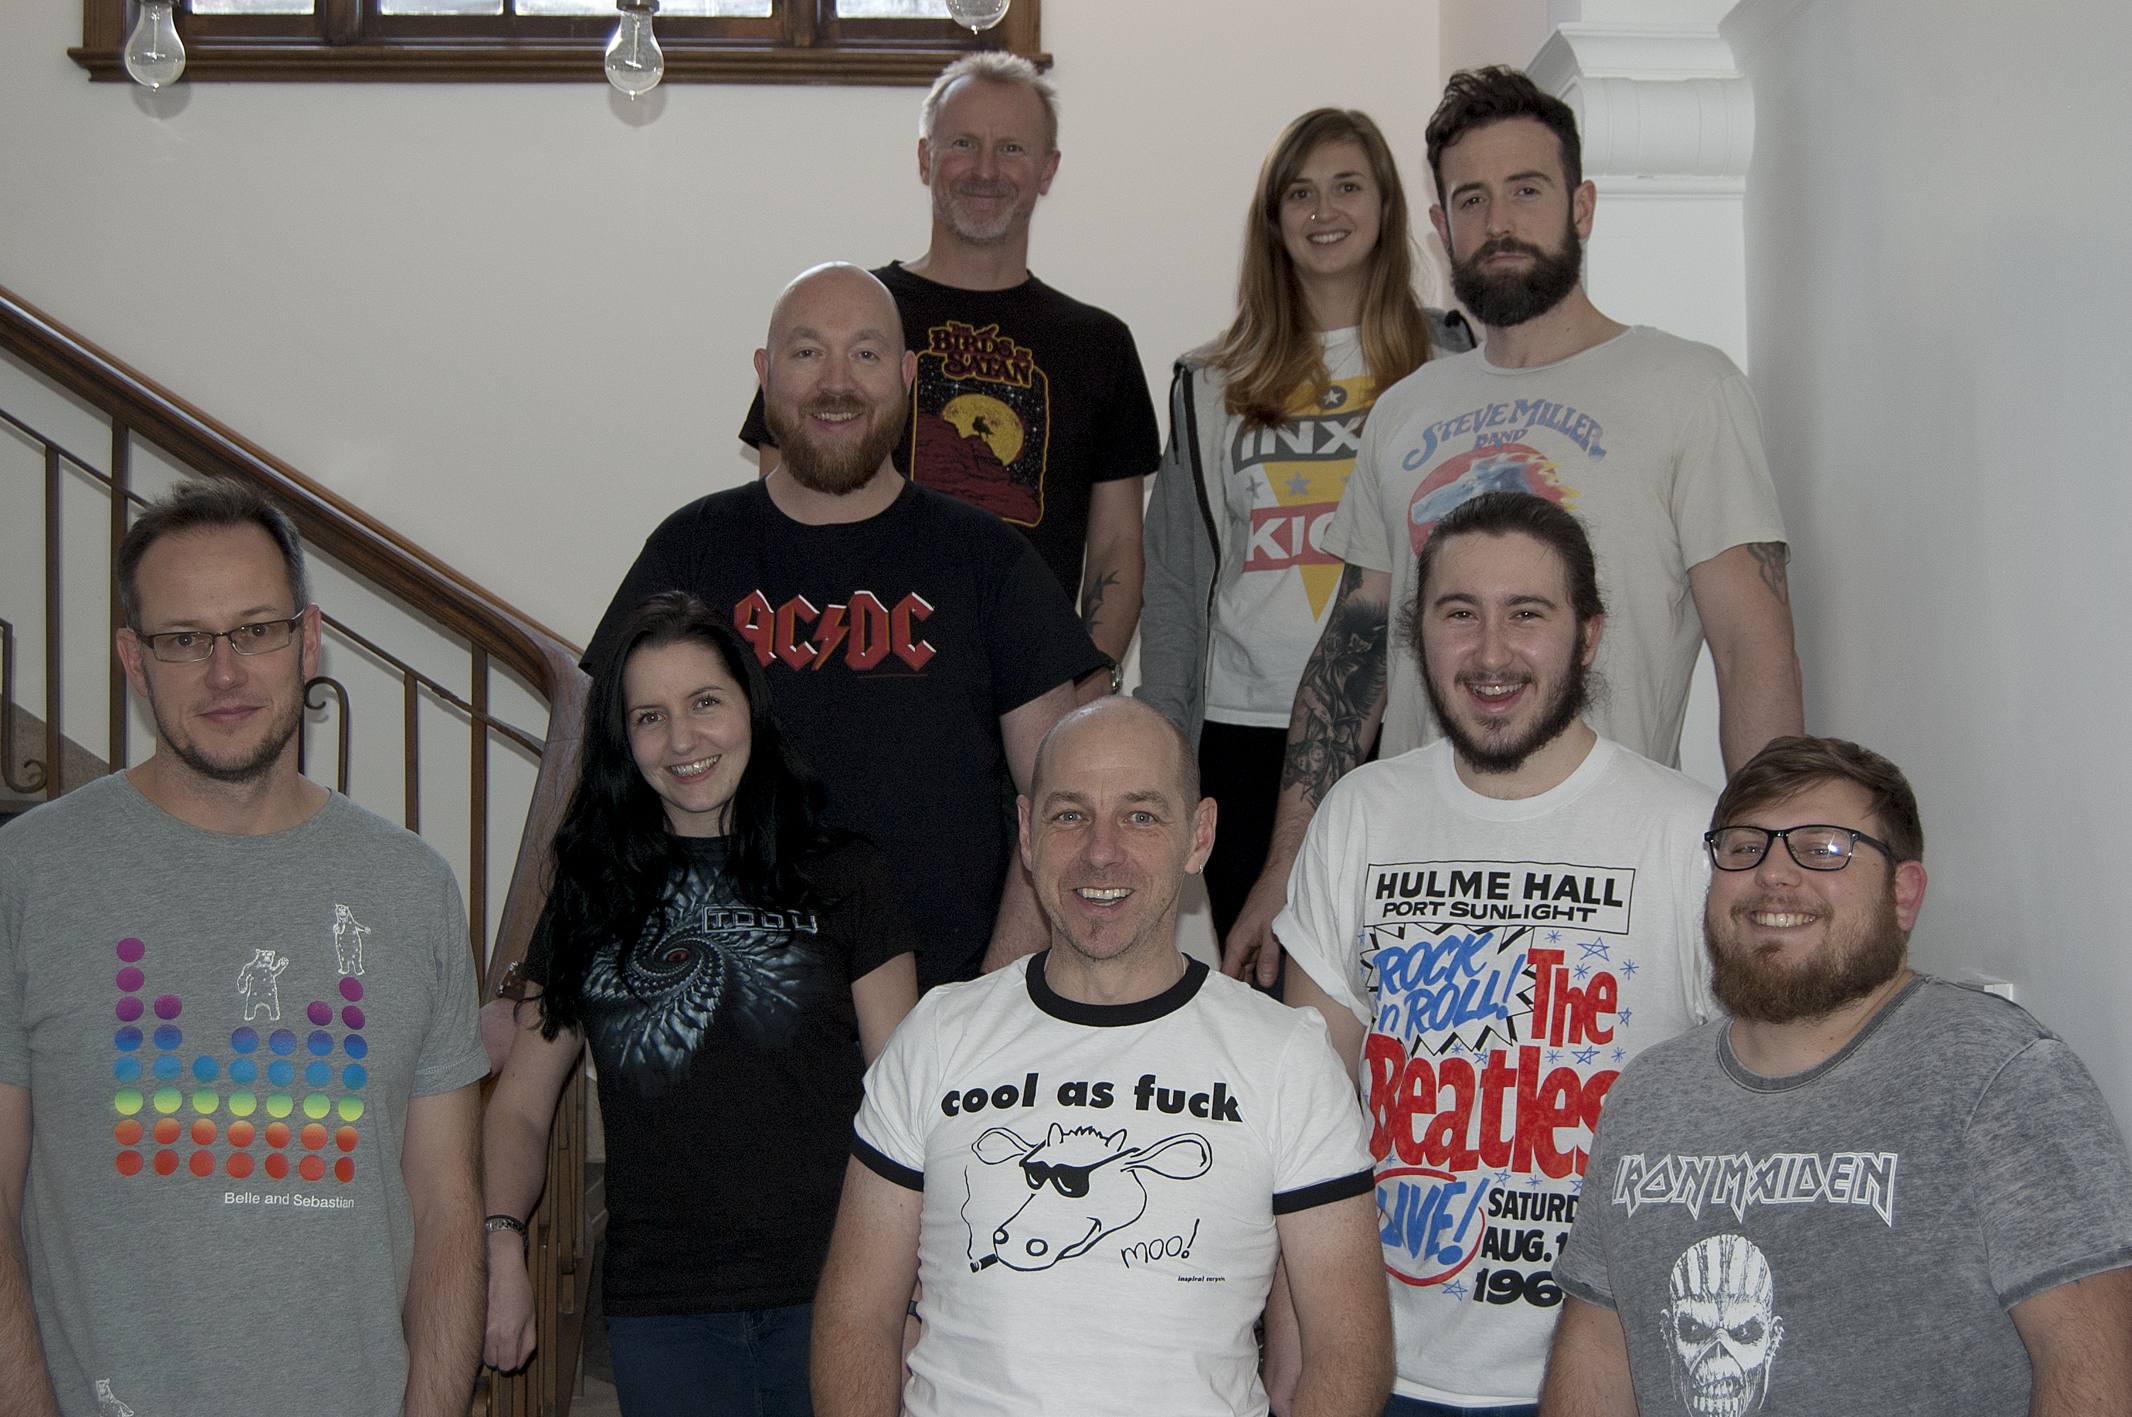 Wear your Favourite Band T-Shirt to Work Day!